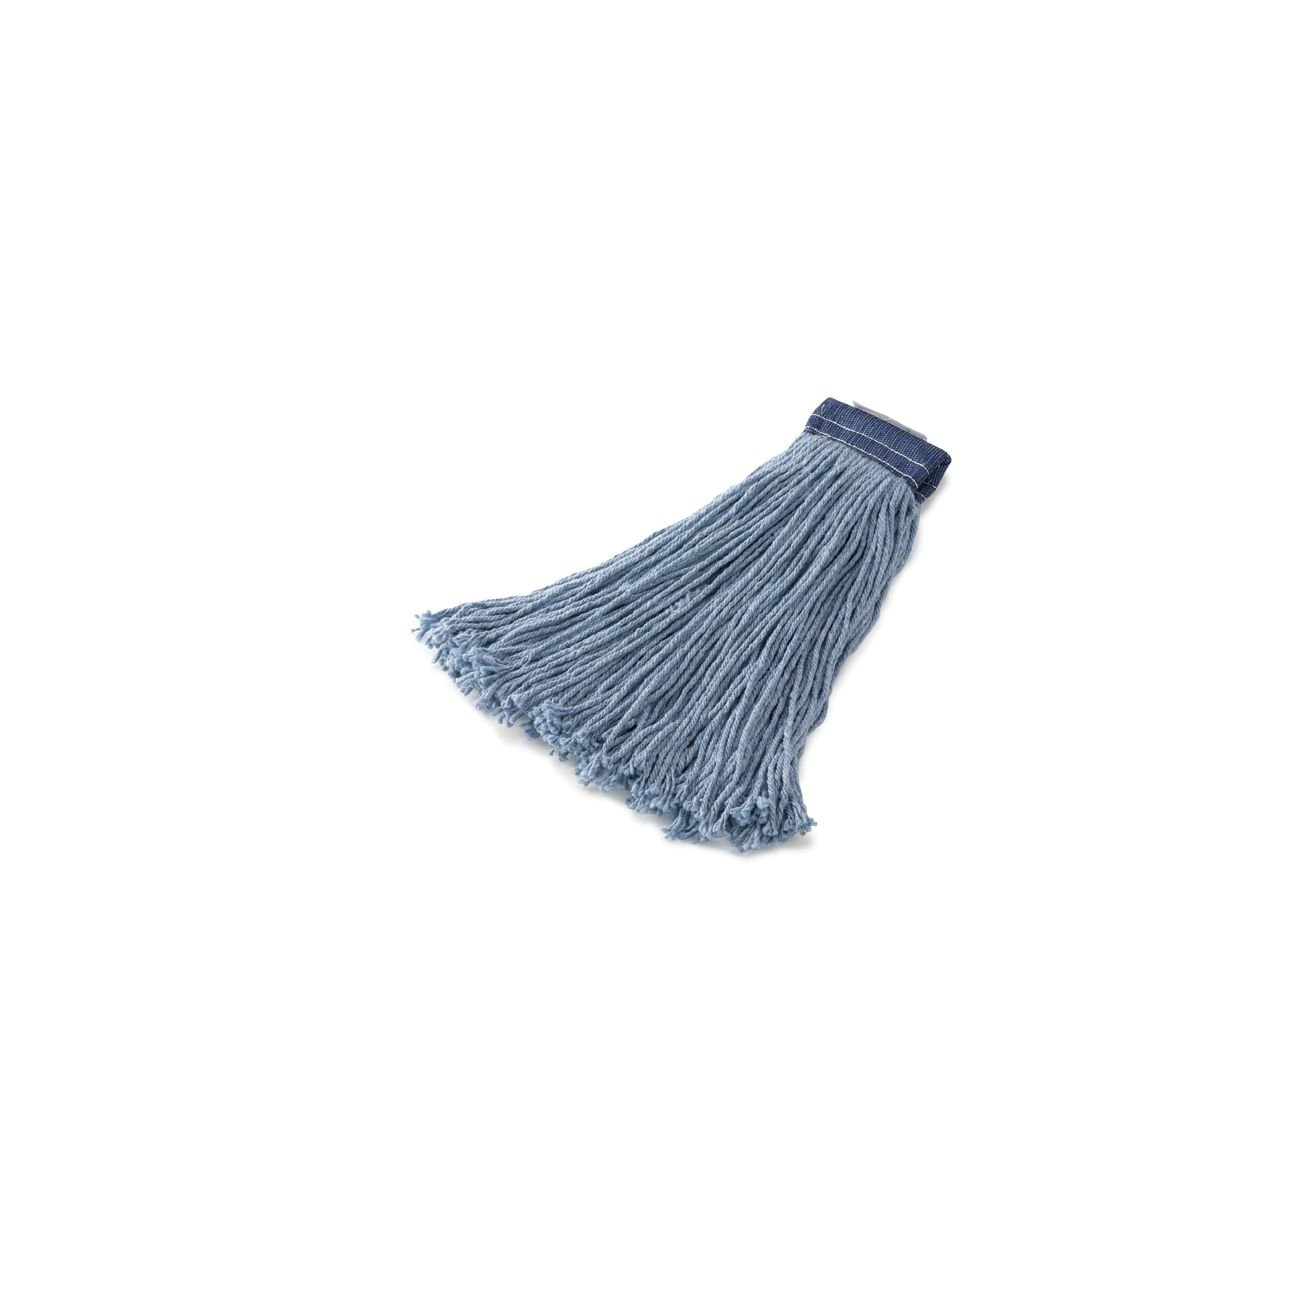 Rubbermaid Commercial Products FGF55800BL00 Premium 8-Ply Cut-End Blend Mop, 24 oz, 5'' Blue Headband (Pack of 12)